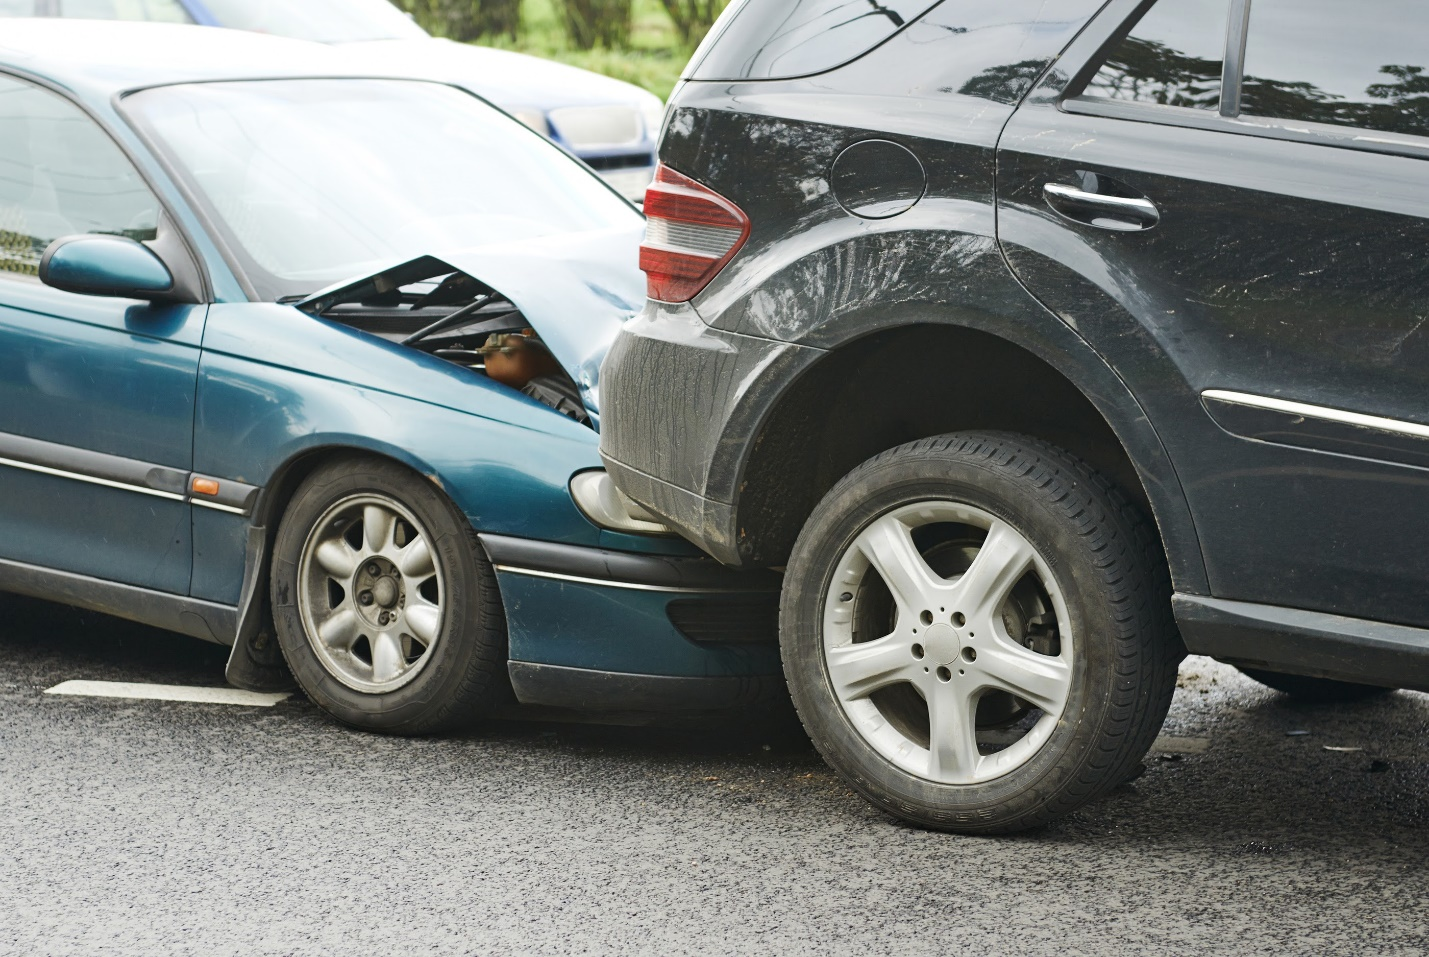 car accident lawyer fayetteville ar - Is Driving Safer in Urban or Rural Areas in Arkansas?